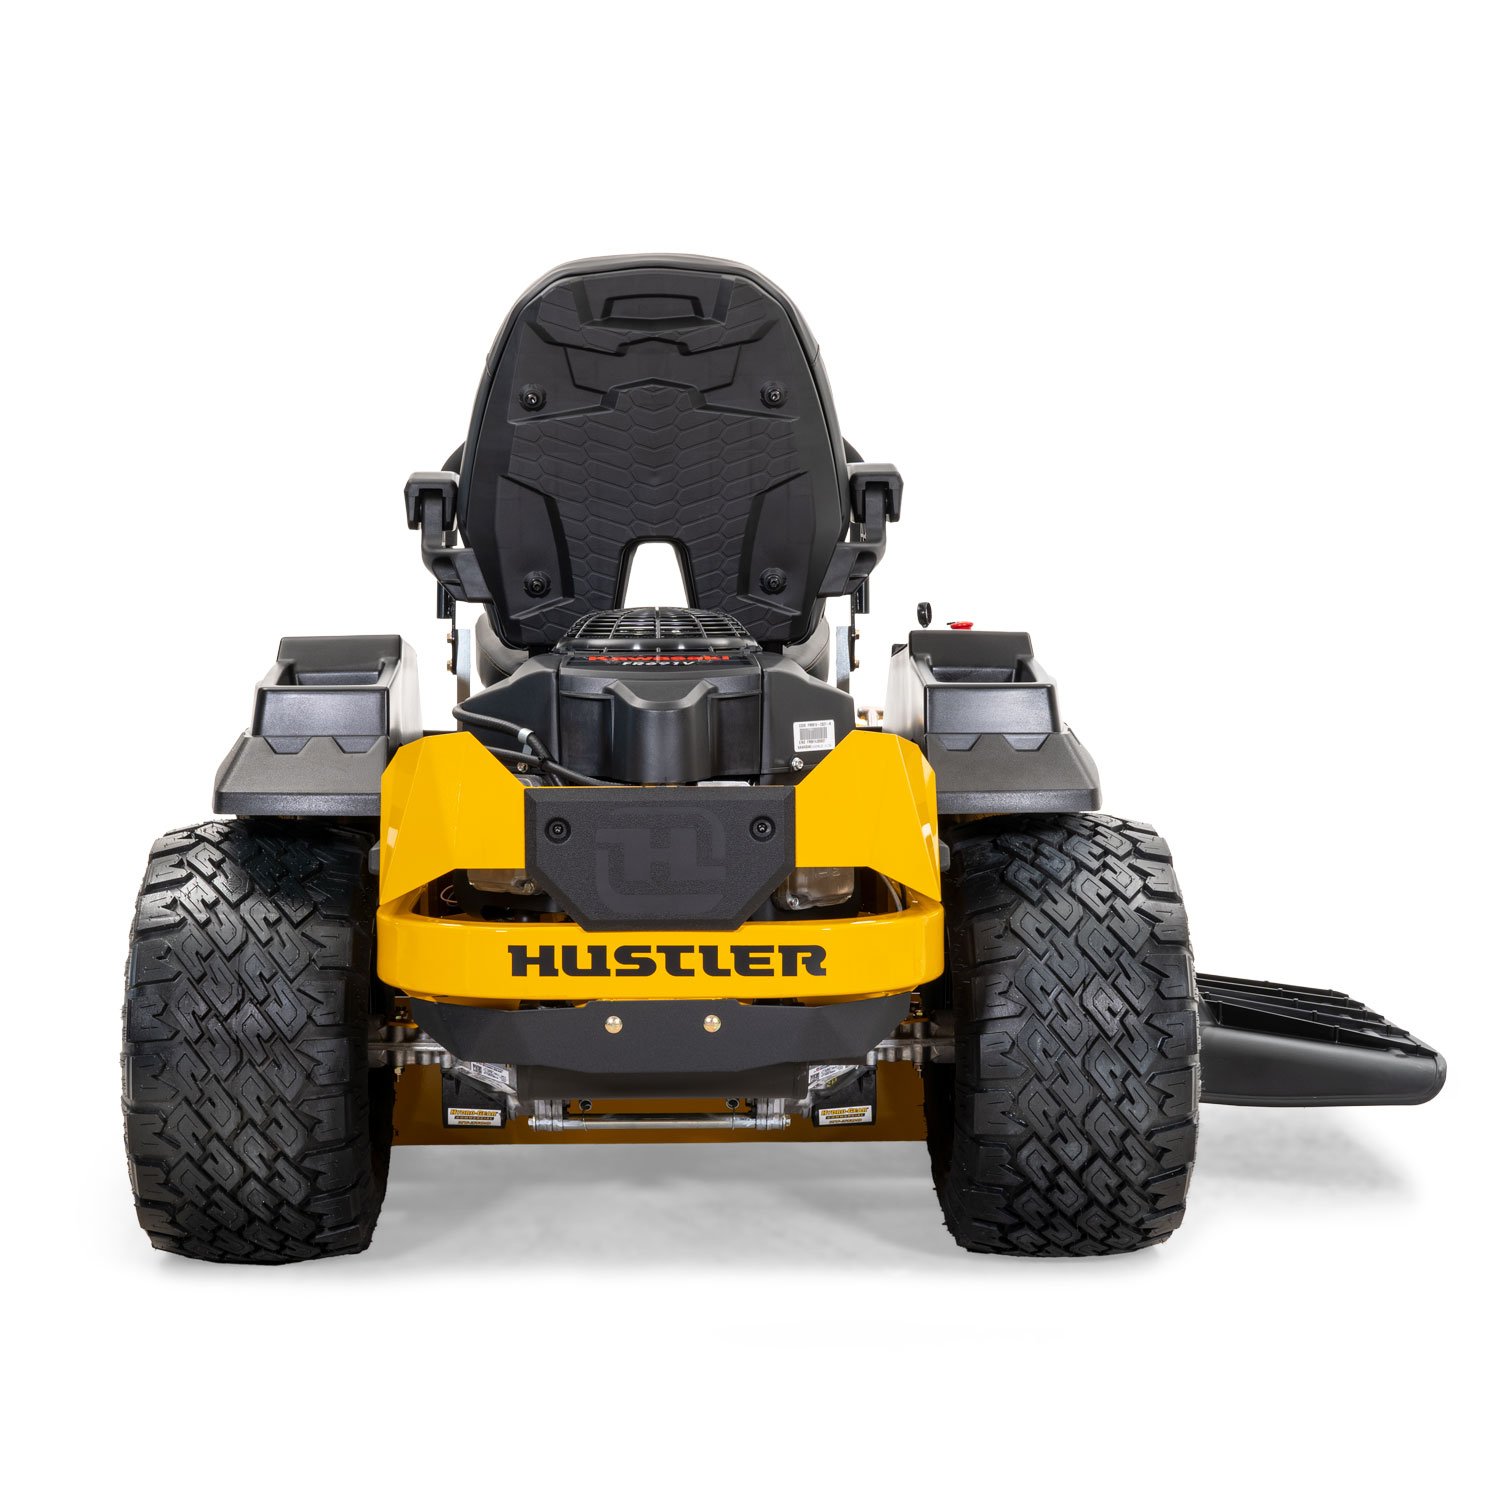 Image of the rear of a yellow riding mower